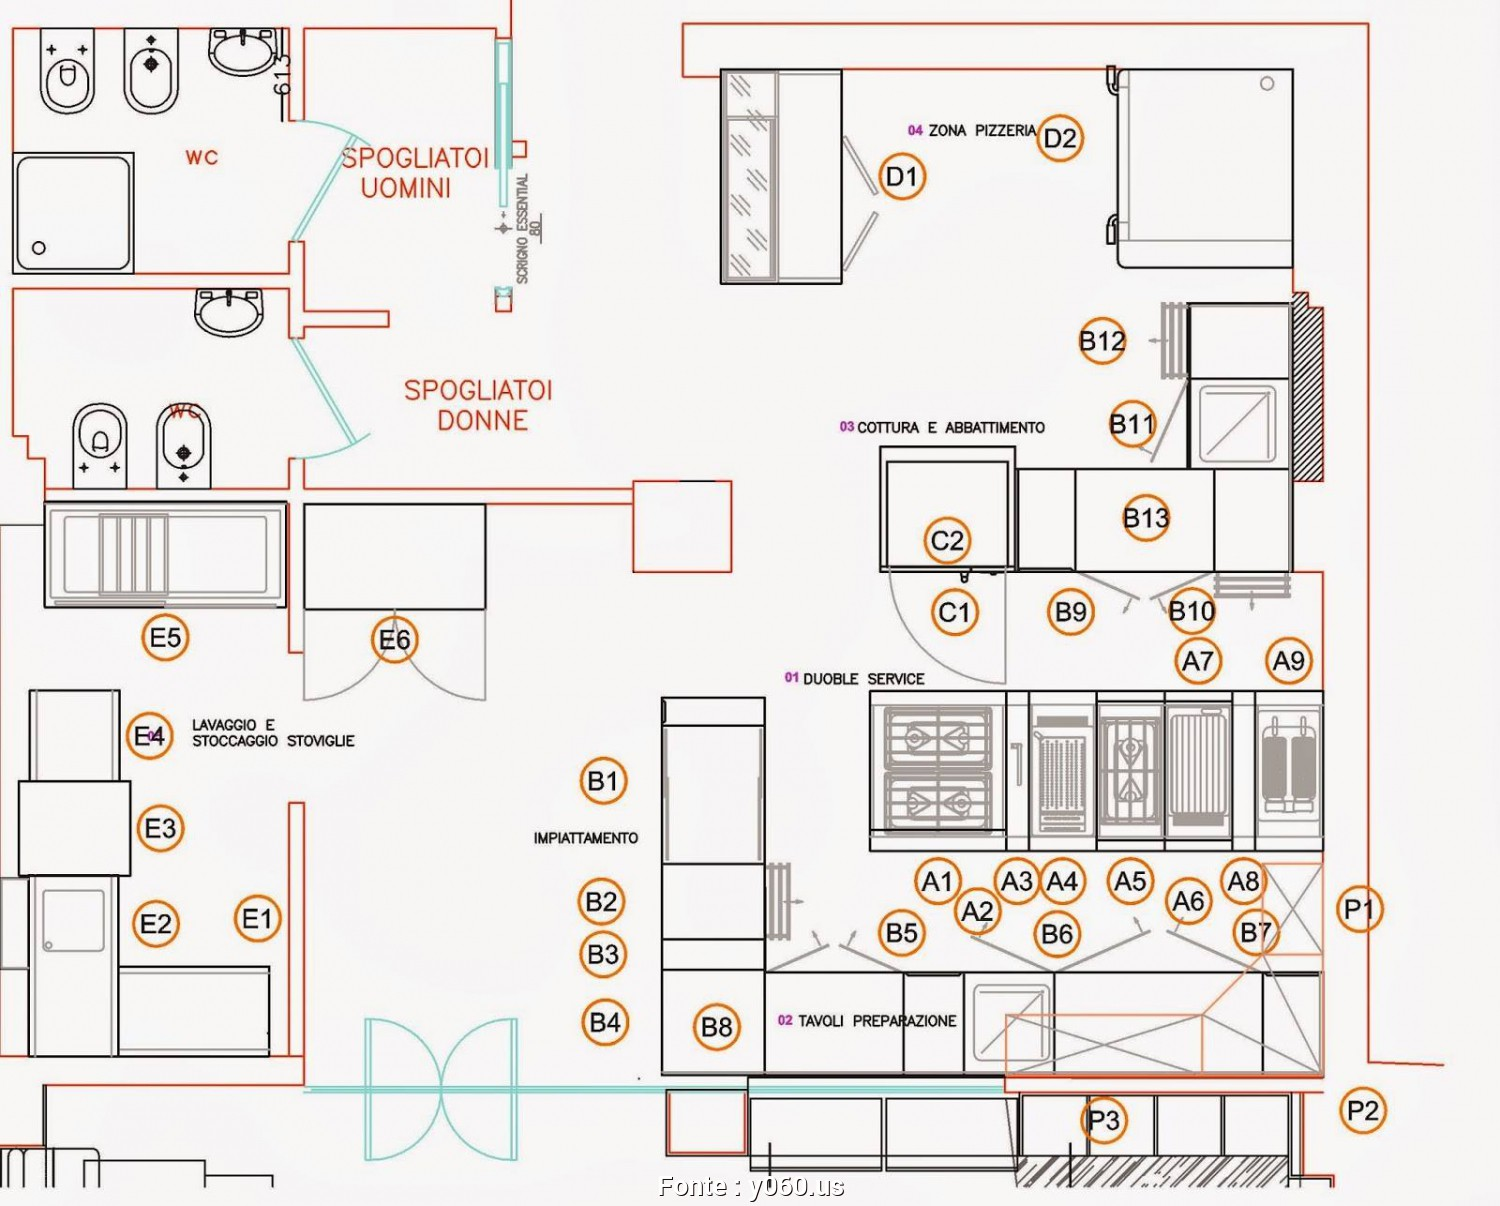 Superiore 4 Sedie Cucina Dwg - Keever For Congress